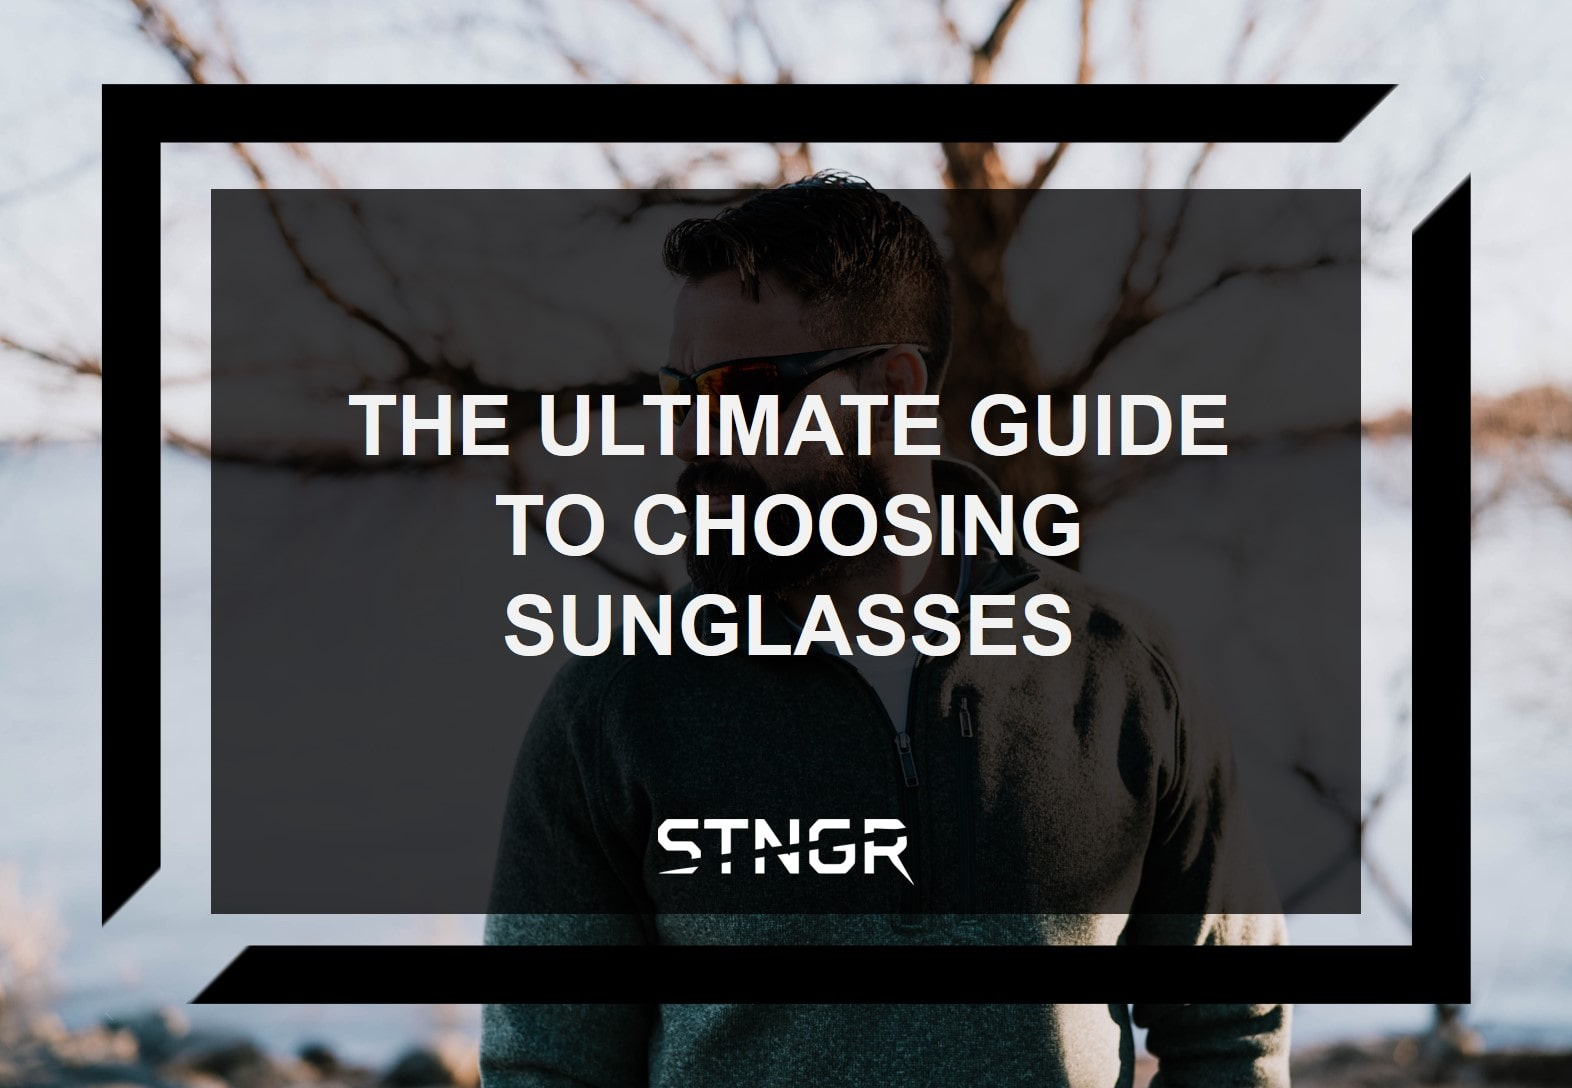 The Ultimate Guide to Choosing Sunglasses